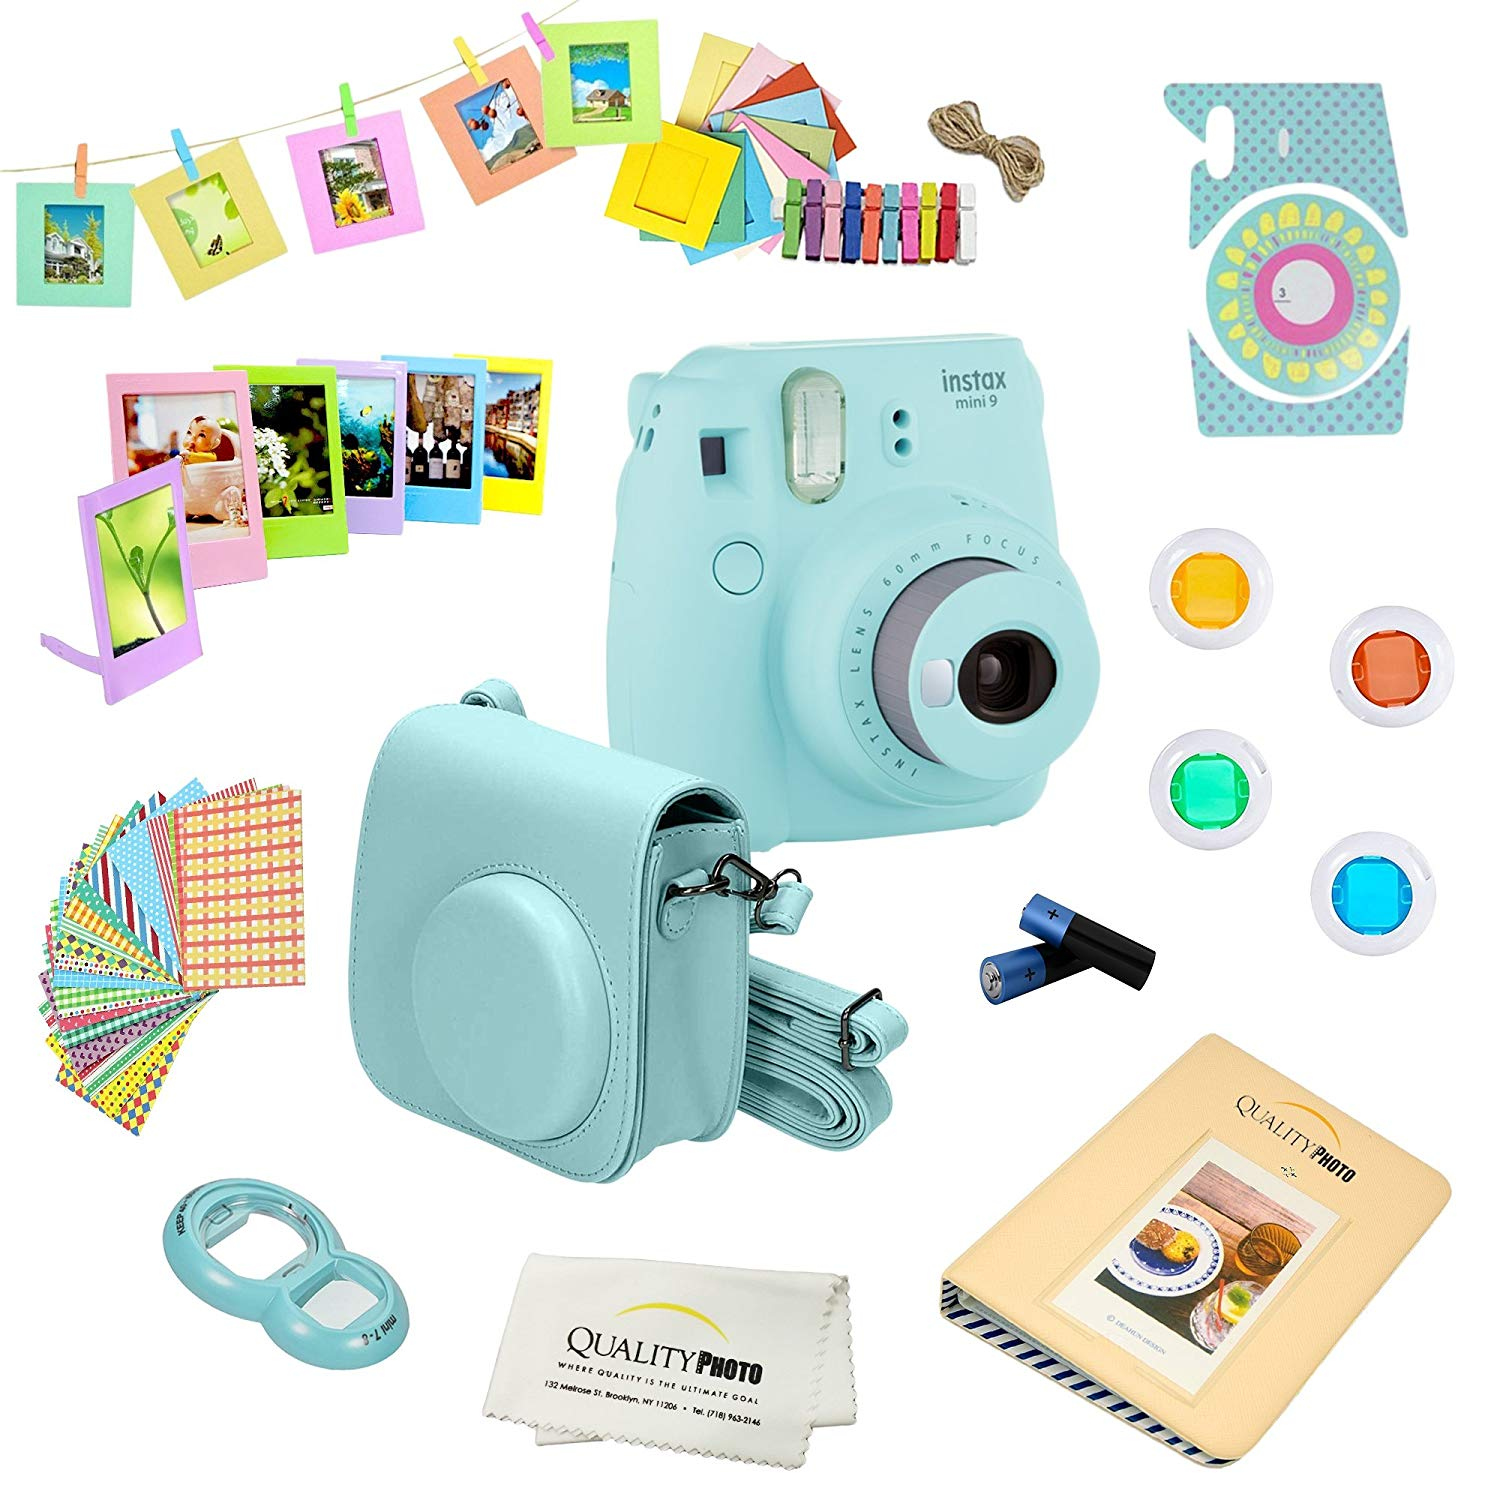 Fujifilm Instax Mini 9 Instant Camera COBALT BLUE + 15 Pcs Instax Instant Camera Accessory Bundle Kit. Includes Instax Case, 4 Color Lenses, Frames, Stickers + MORE